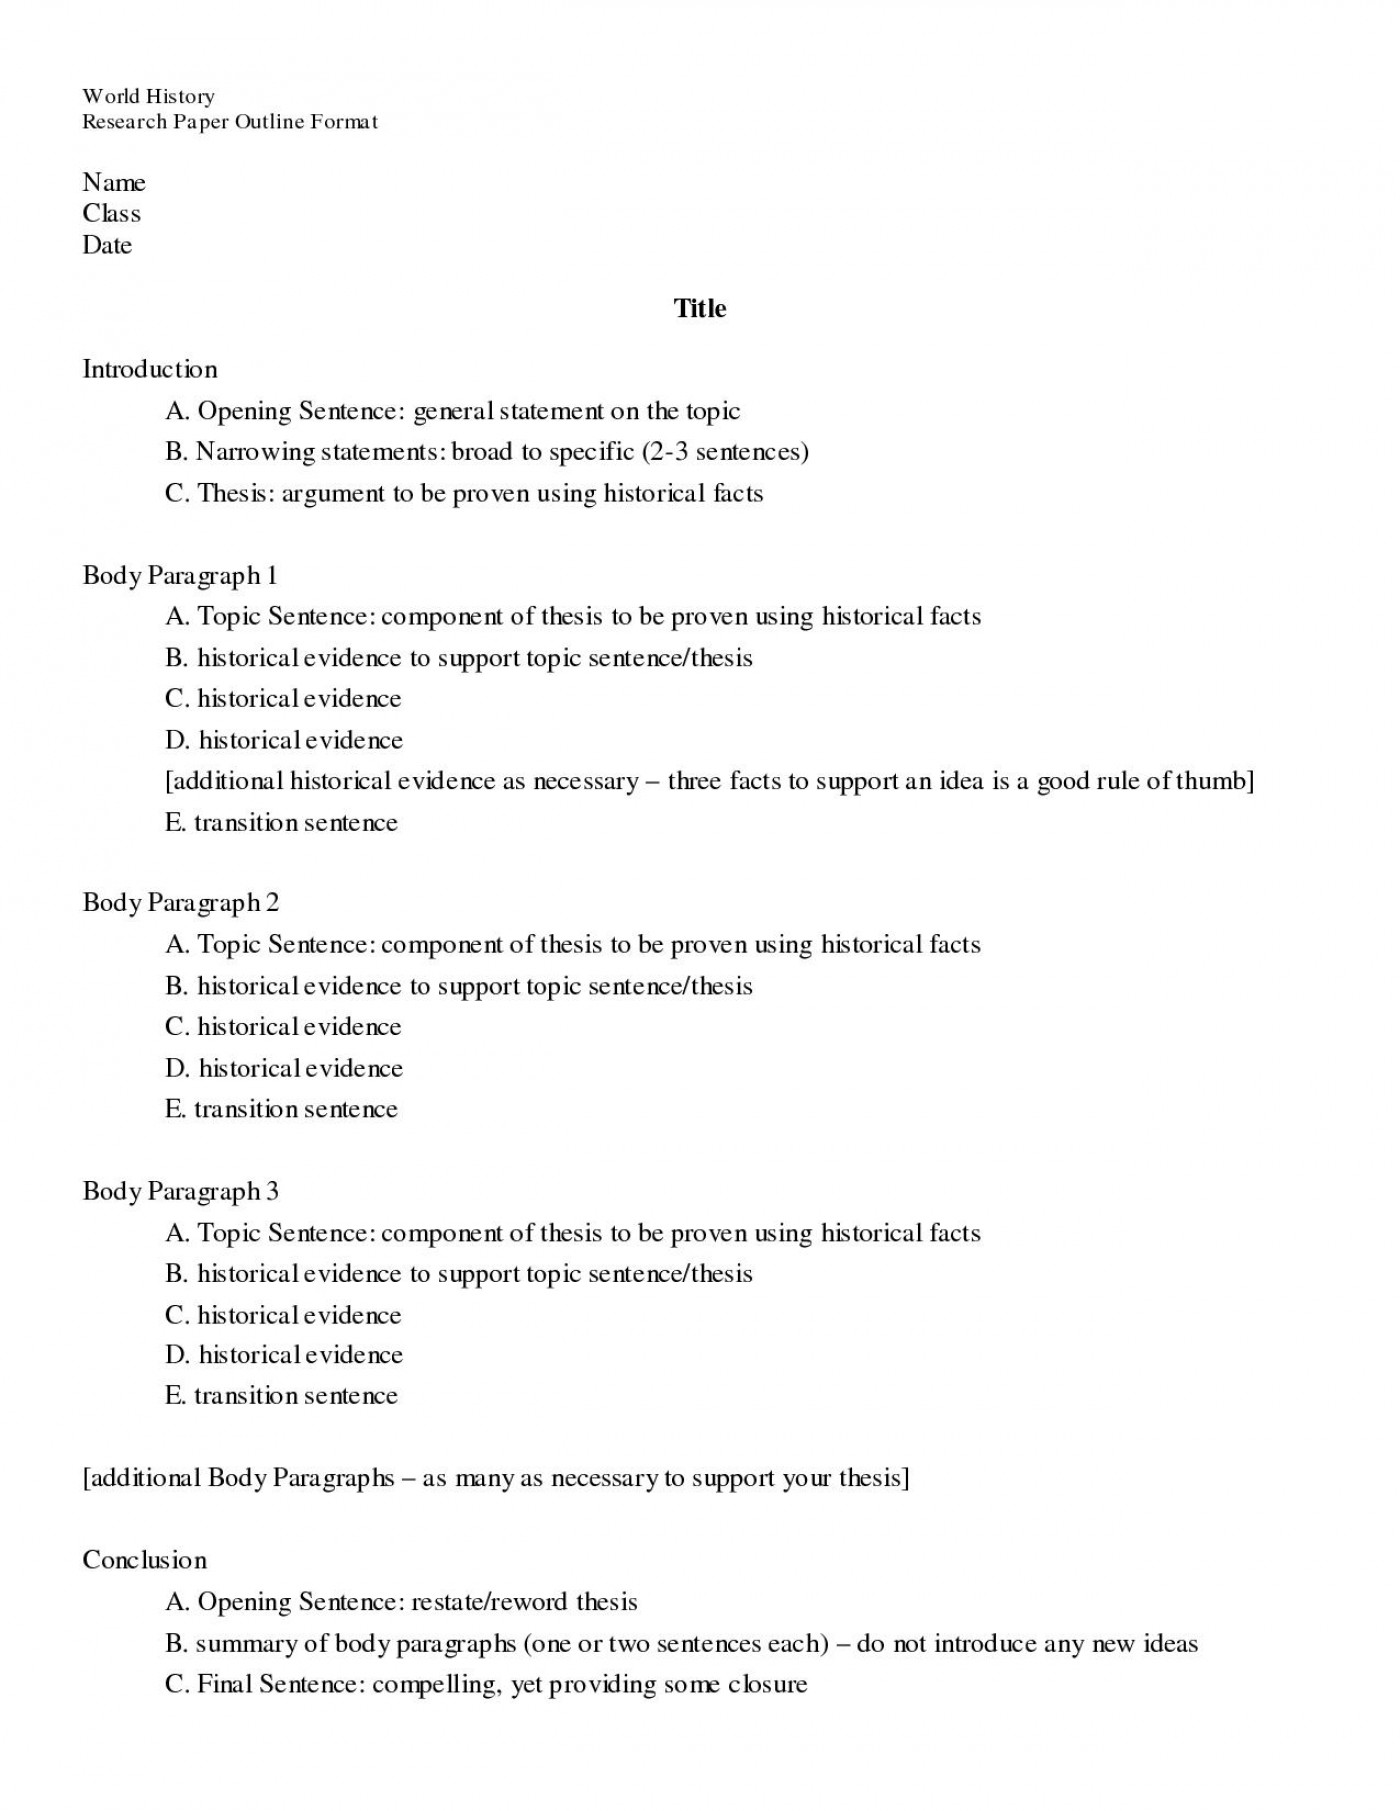 015 Biology Research Paper Sample Outline Remarkable Format Example 1400